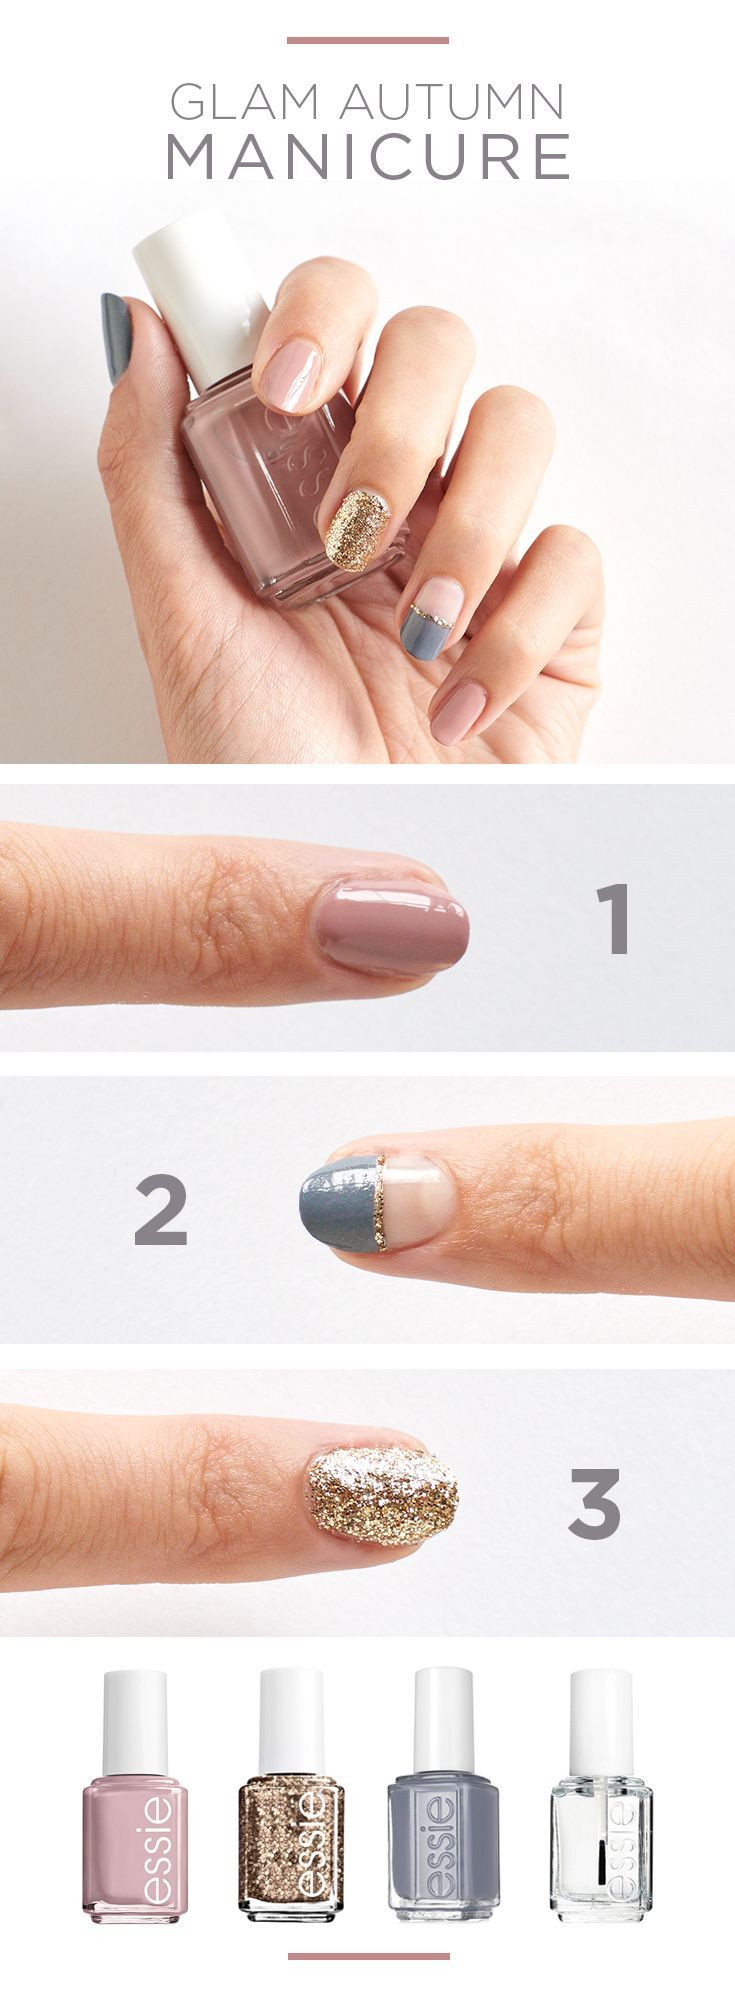 Change of seasons means a change of manis, right? Go for something a little more glam this fall with a colorblocked manicure in muted autumn colors. Featured essie nail polish colors: Ladylike pink, Summit of Style gold, Petal Pushers grey and clear top coat. Find your fall colors at Kohl's.